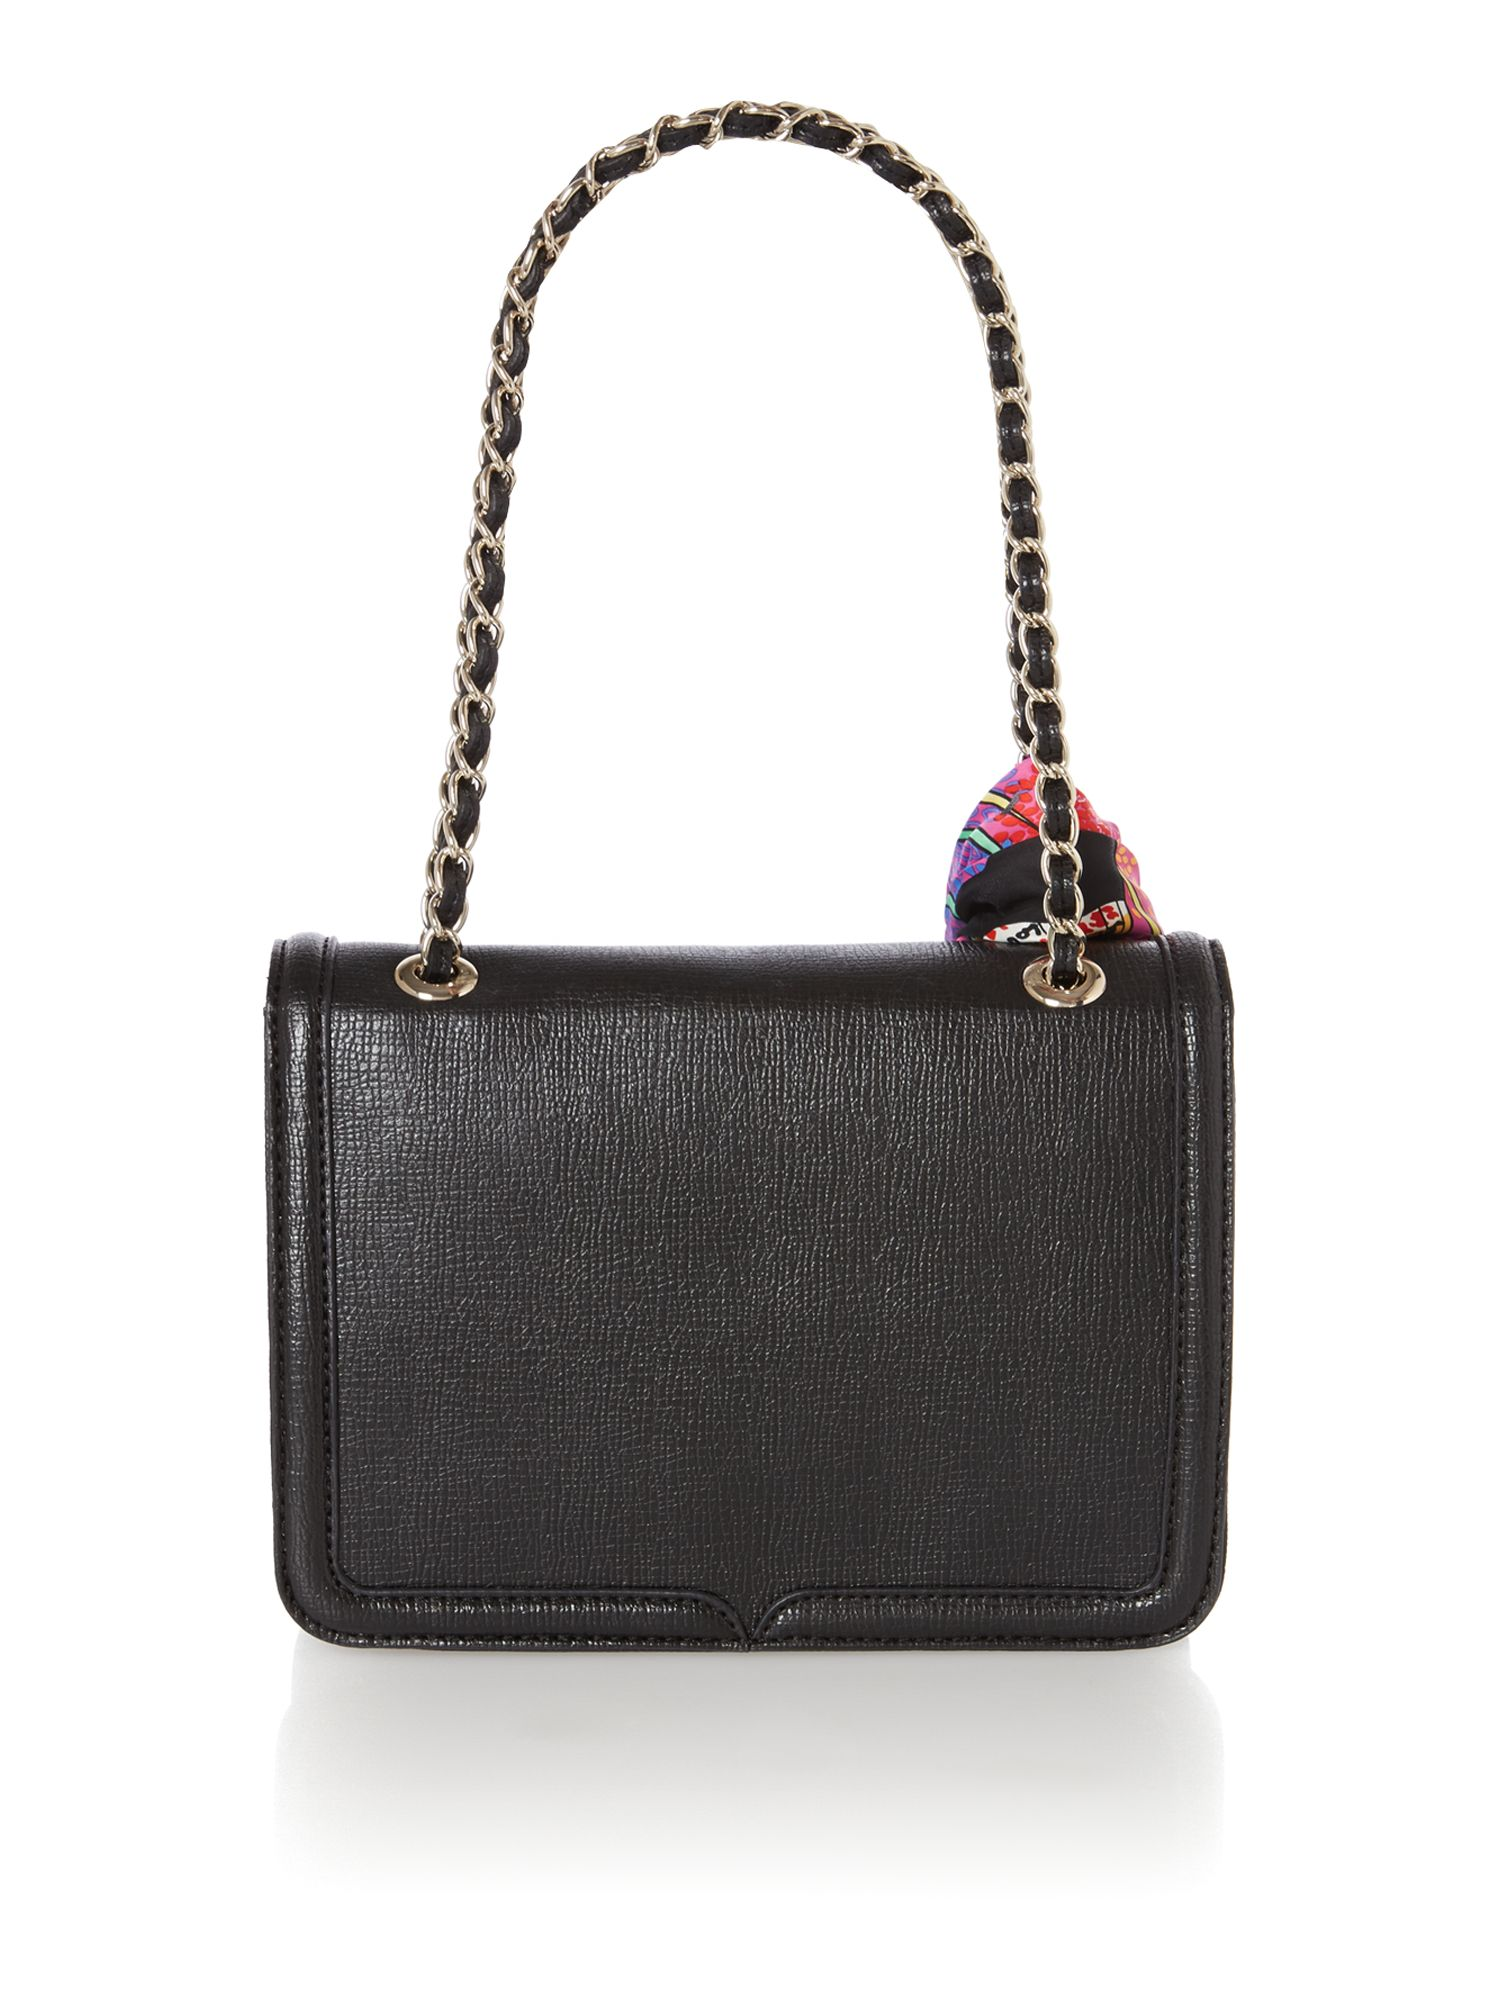 Black small saffiano shoulder bag